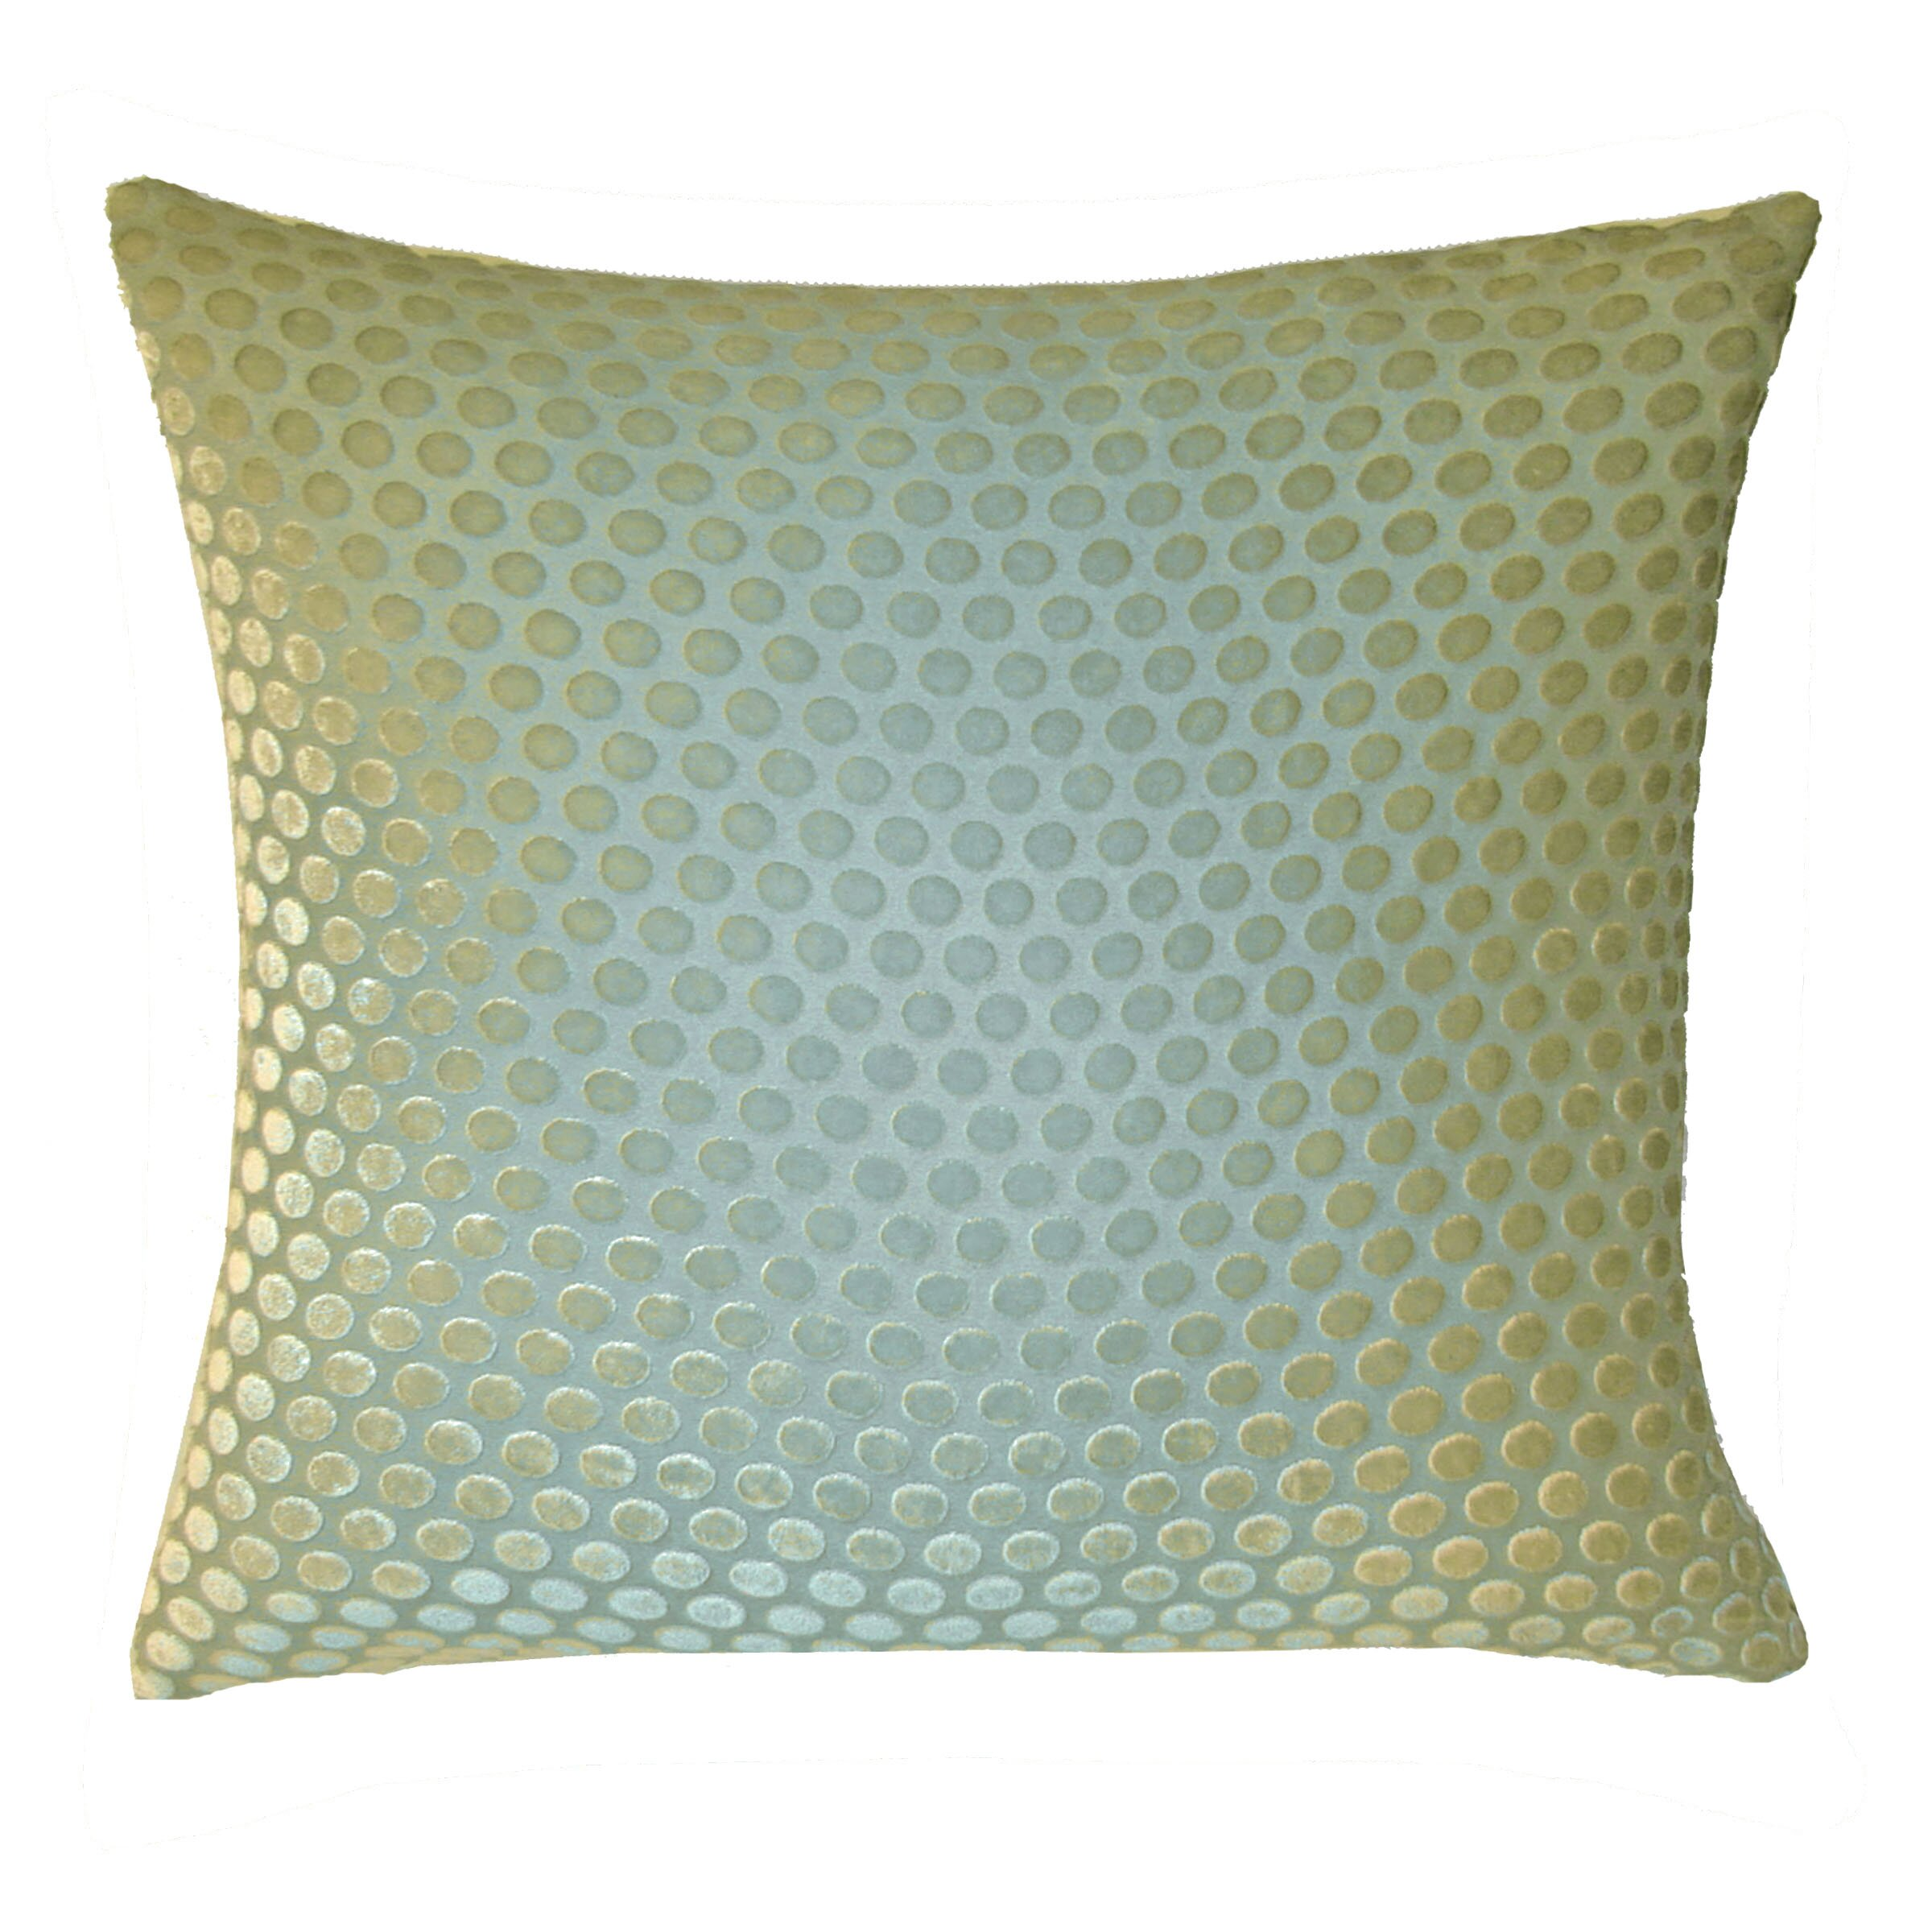 Throw Pillows Velvet : Kevin O Brien Studio Dots Velvet Throw Pillow Wayfair